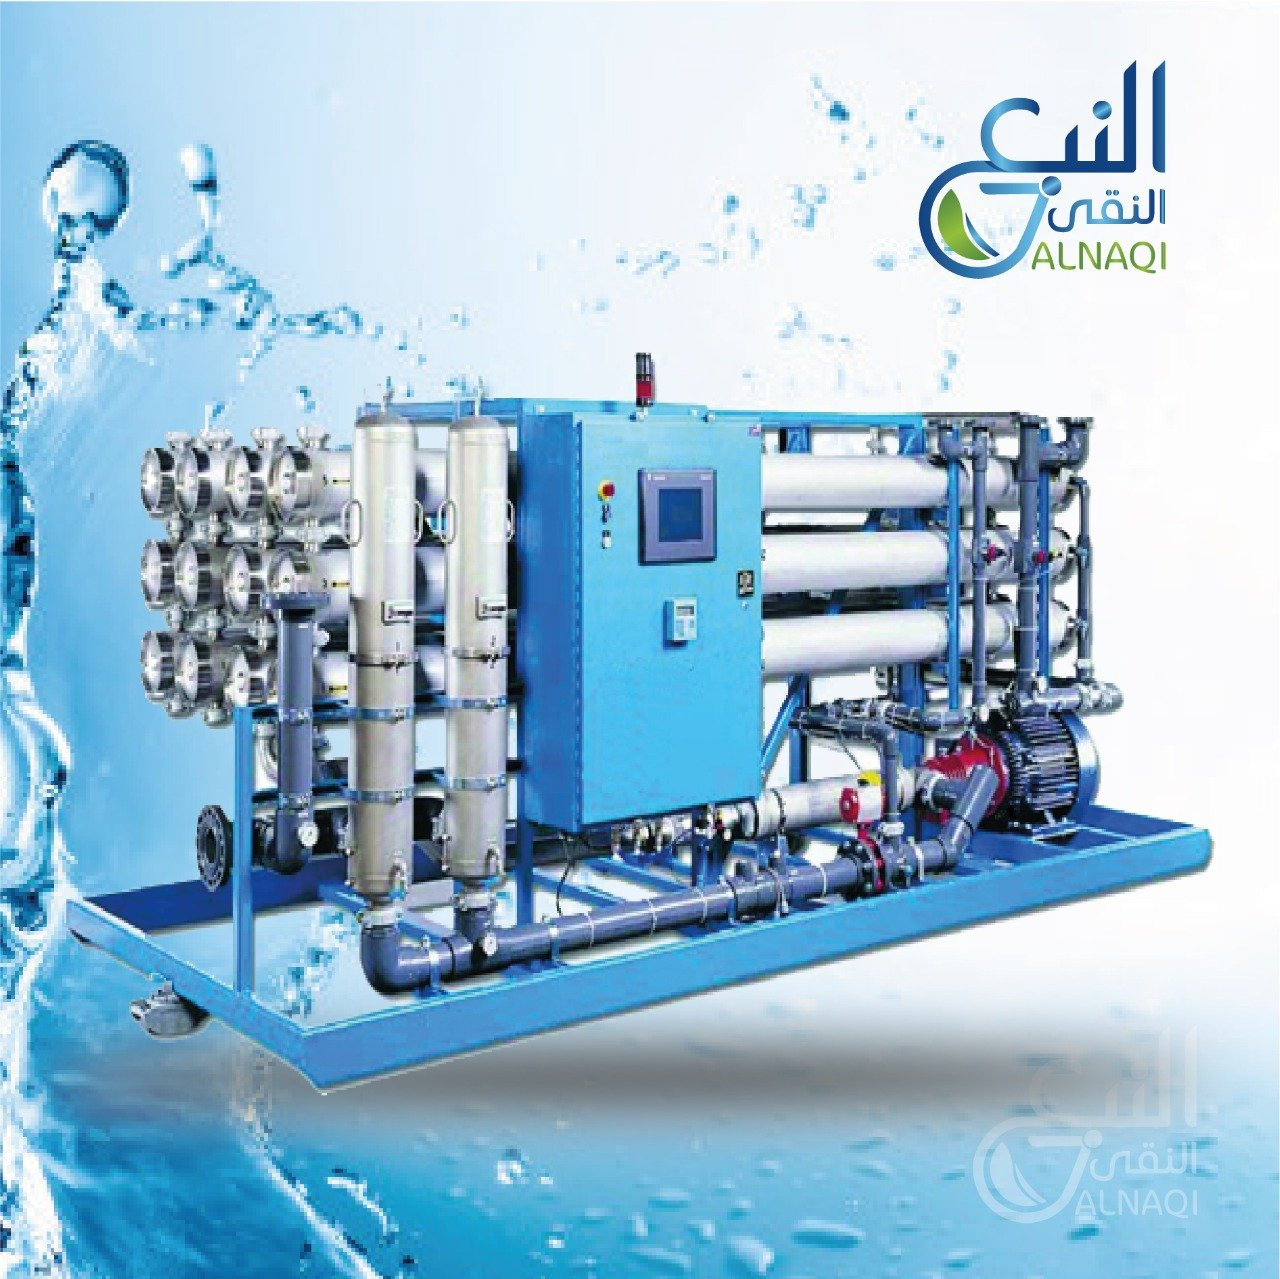 Water and salt water desalination devices